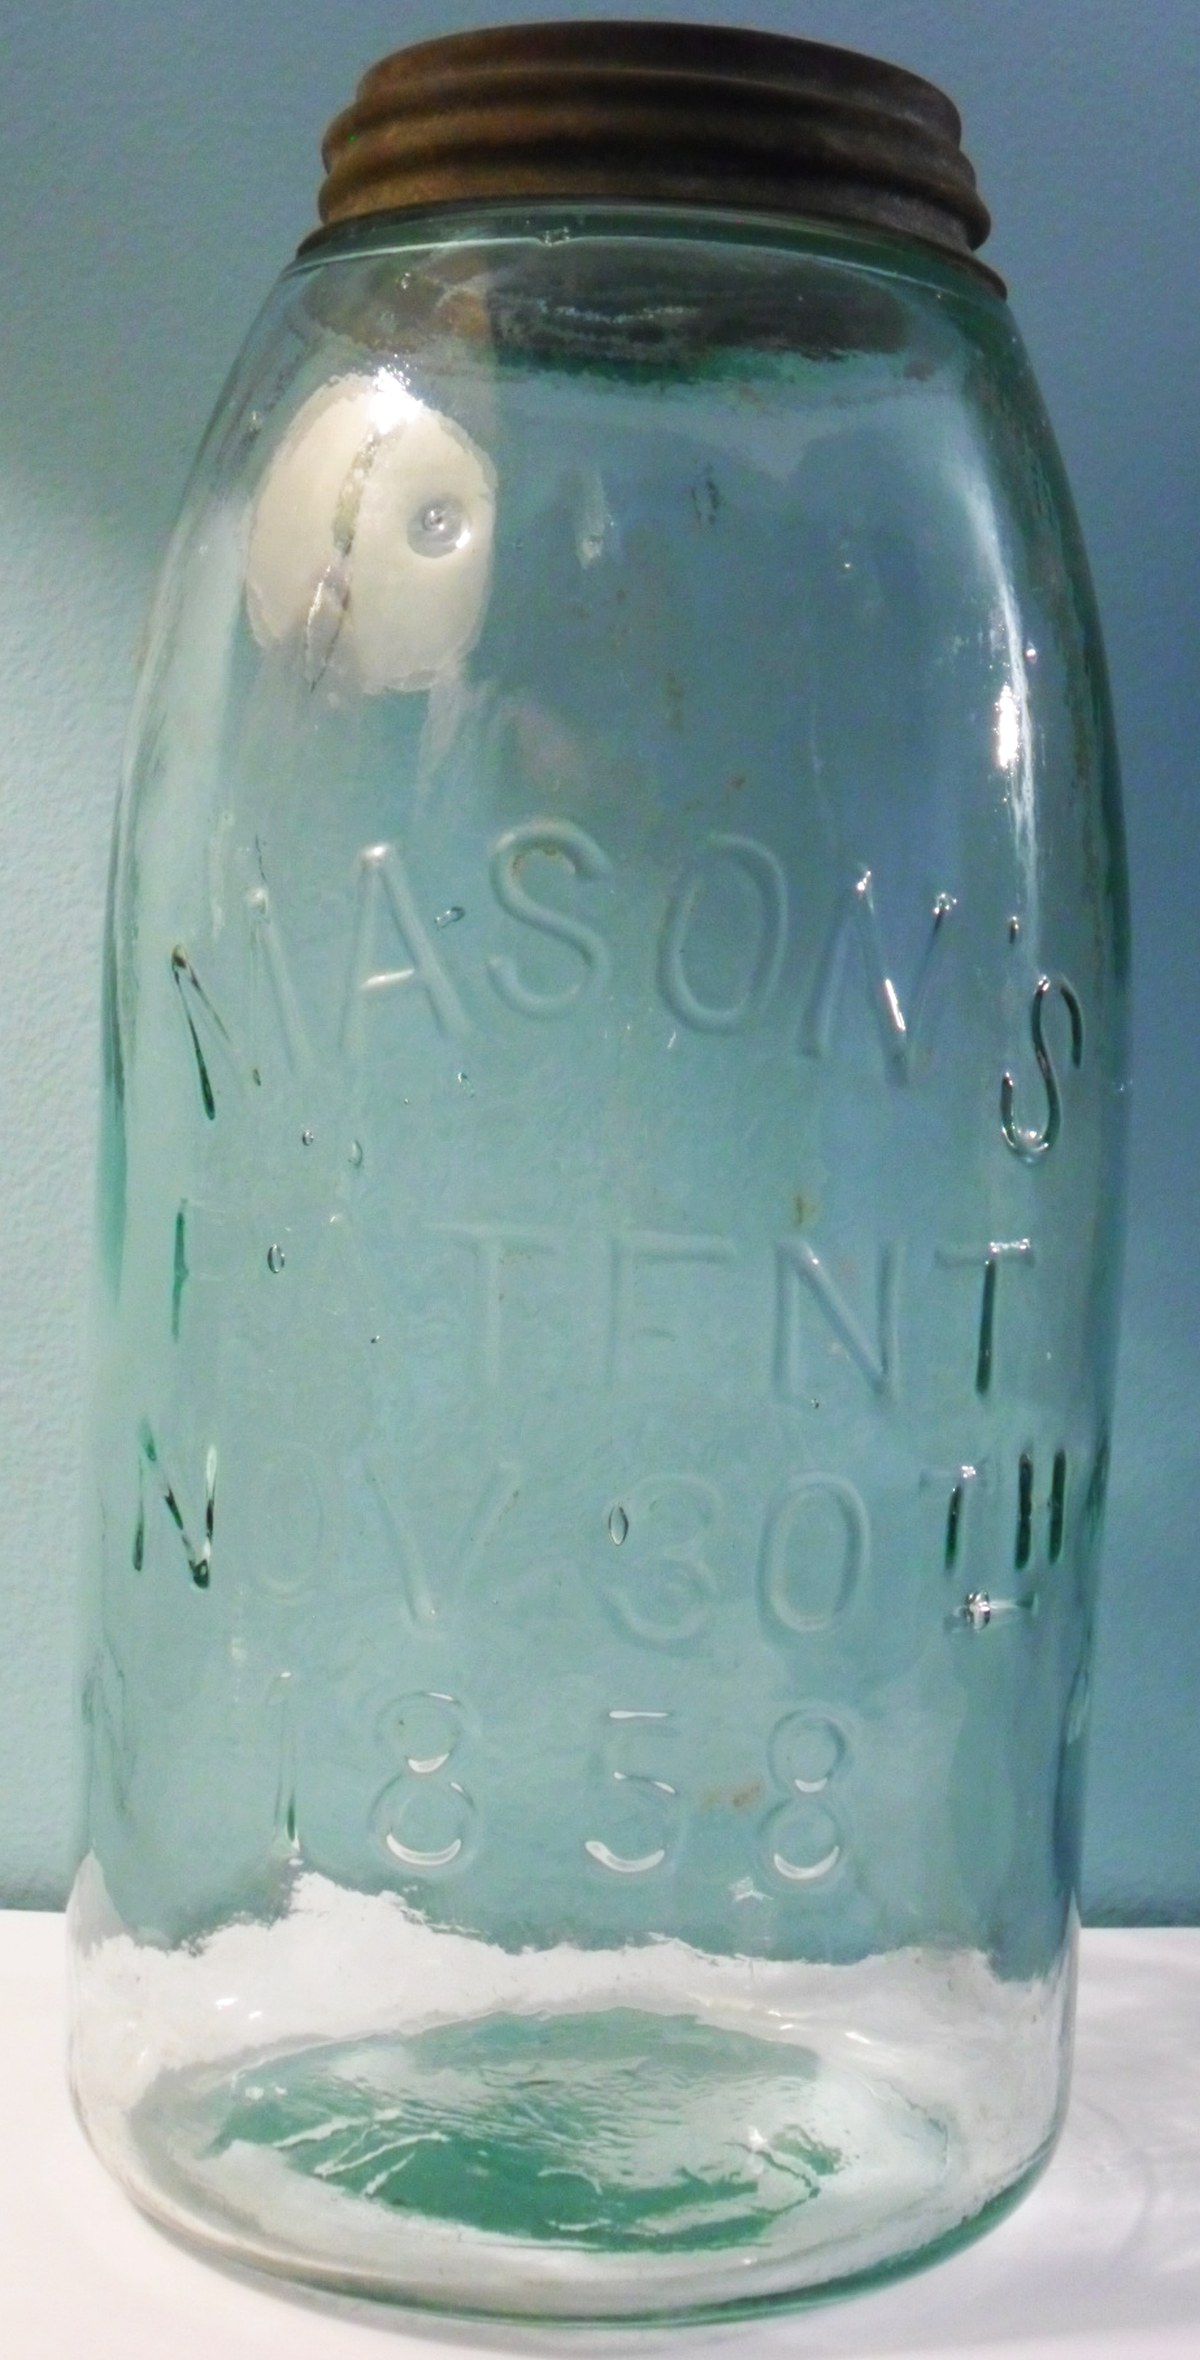 crown mason jar dating Old crown preserve jars with lids - most dated 1930s 1 of the small crown jars marked with 'hd7' inside a diamond (diamond glass co) on base 1 small jar crow with no date or symbol on base 1 old perfect seal preserve jar with lid some misc old glass preserve lids all for $ 2500.